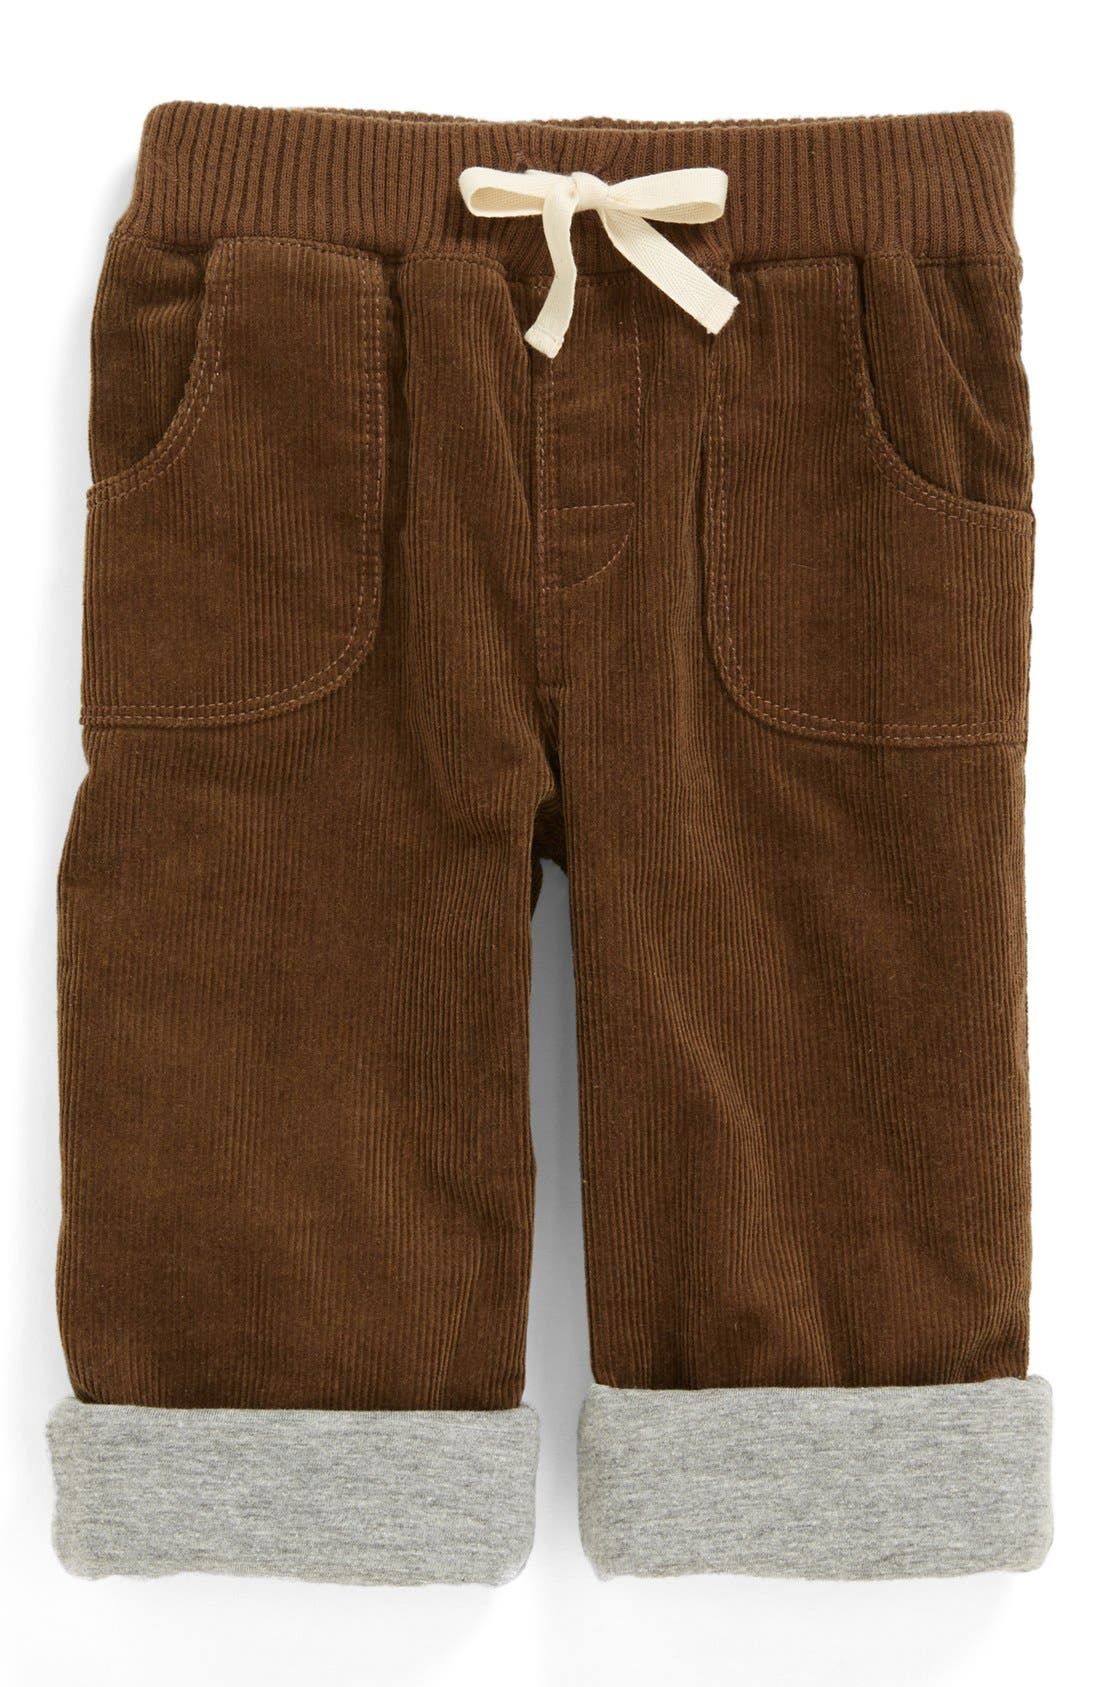 Alternate Image 1 Selected - Nordstrom Baby Lined Corduroy Pants (Baby Boys)